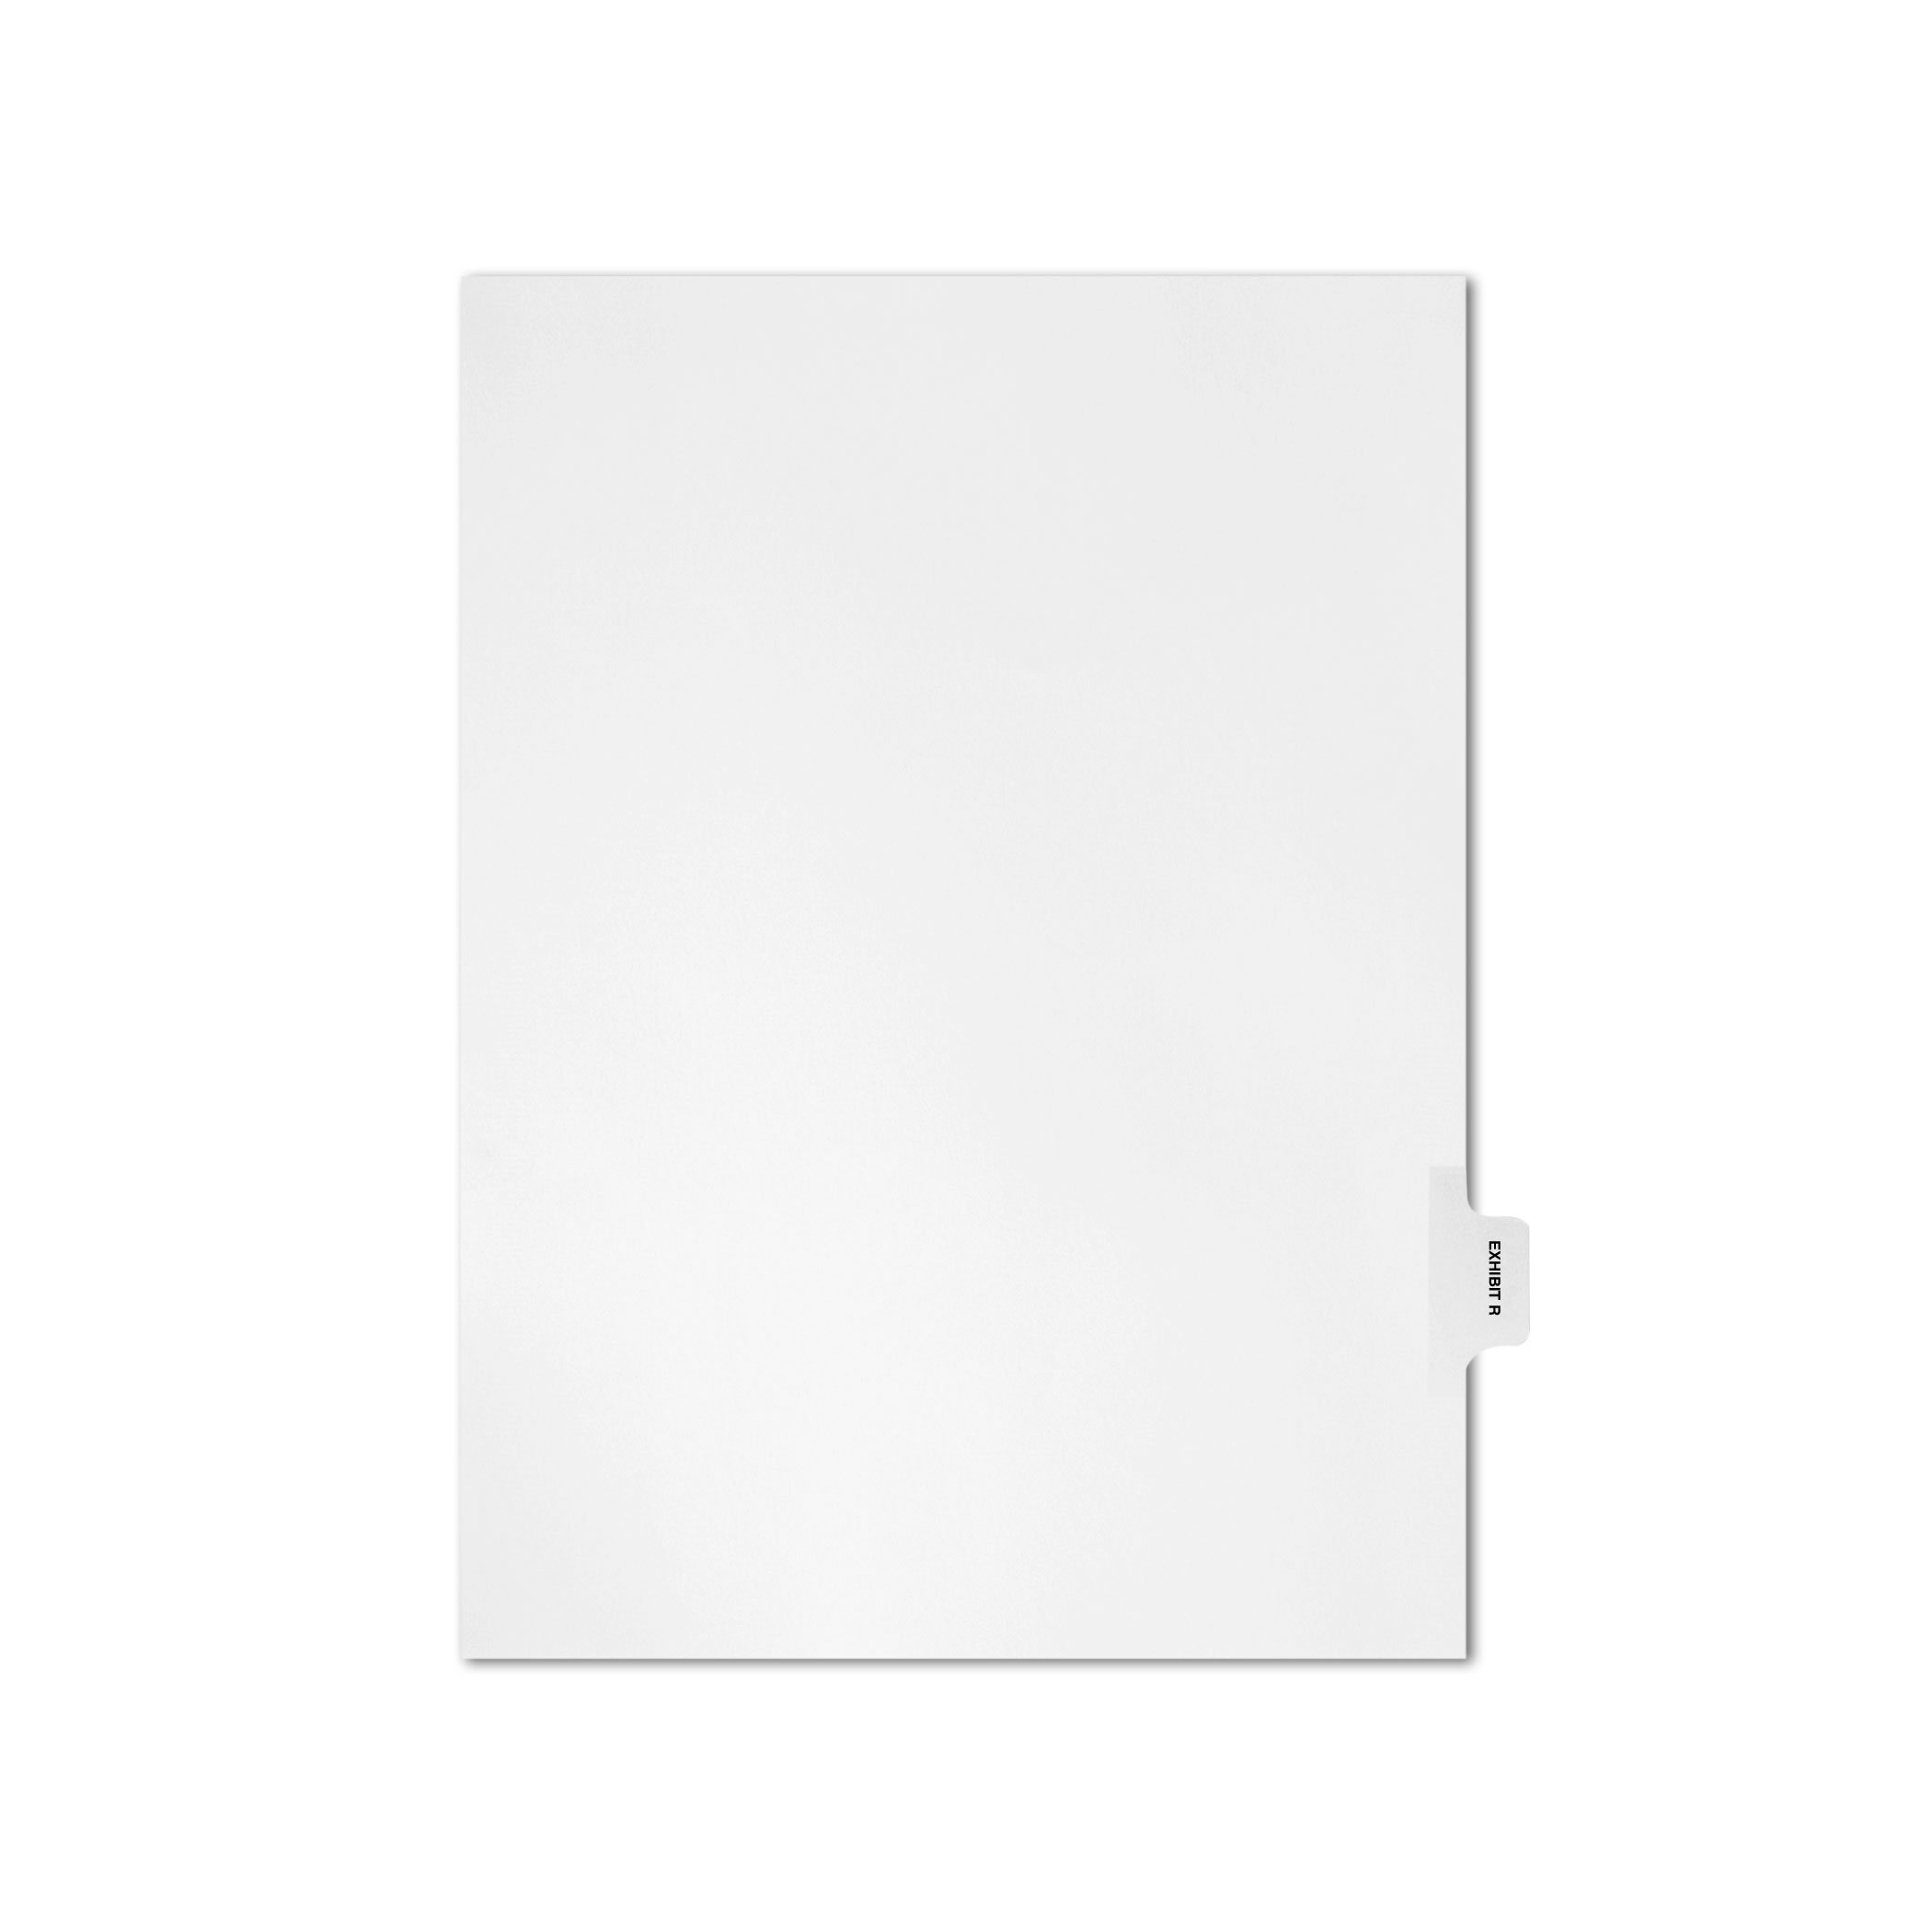 AMZfiling Individual Legal Index Tab Dividers, Compatible with Avery- Exhibit R, Side Tabs, Letter Size, White, Position 8 (25 Sheets/pkg)